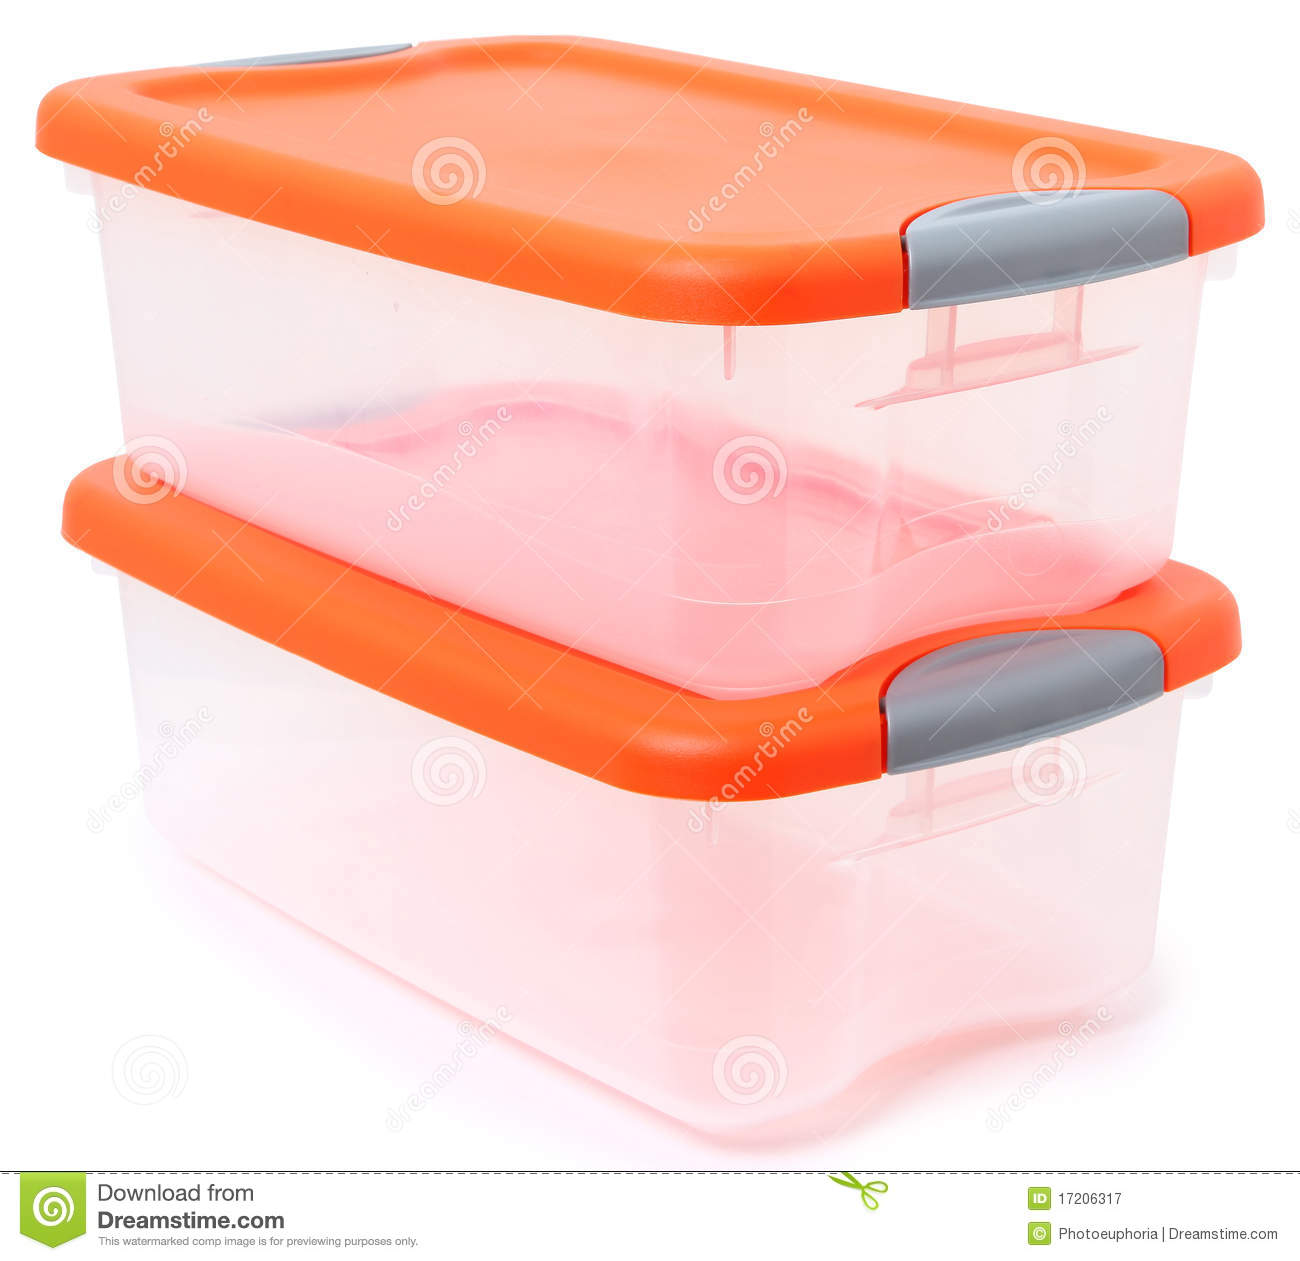 Amazing Plastic Storage Bins With Lids - plastic-storage-container-bin-17206317  Pic_708687.jpg